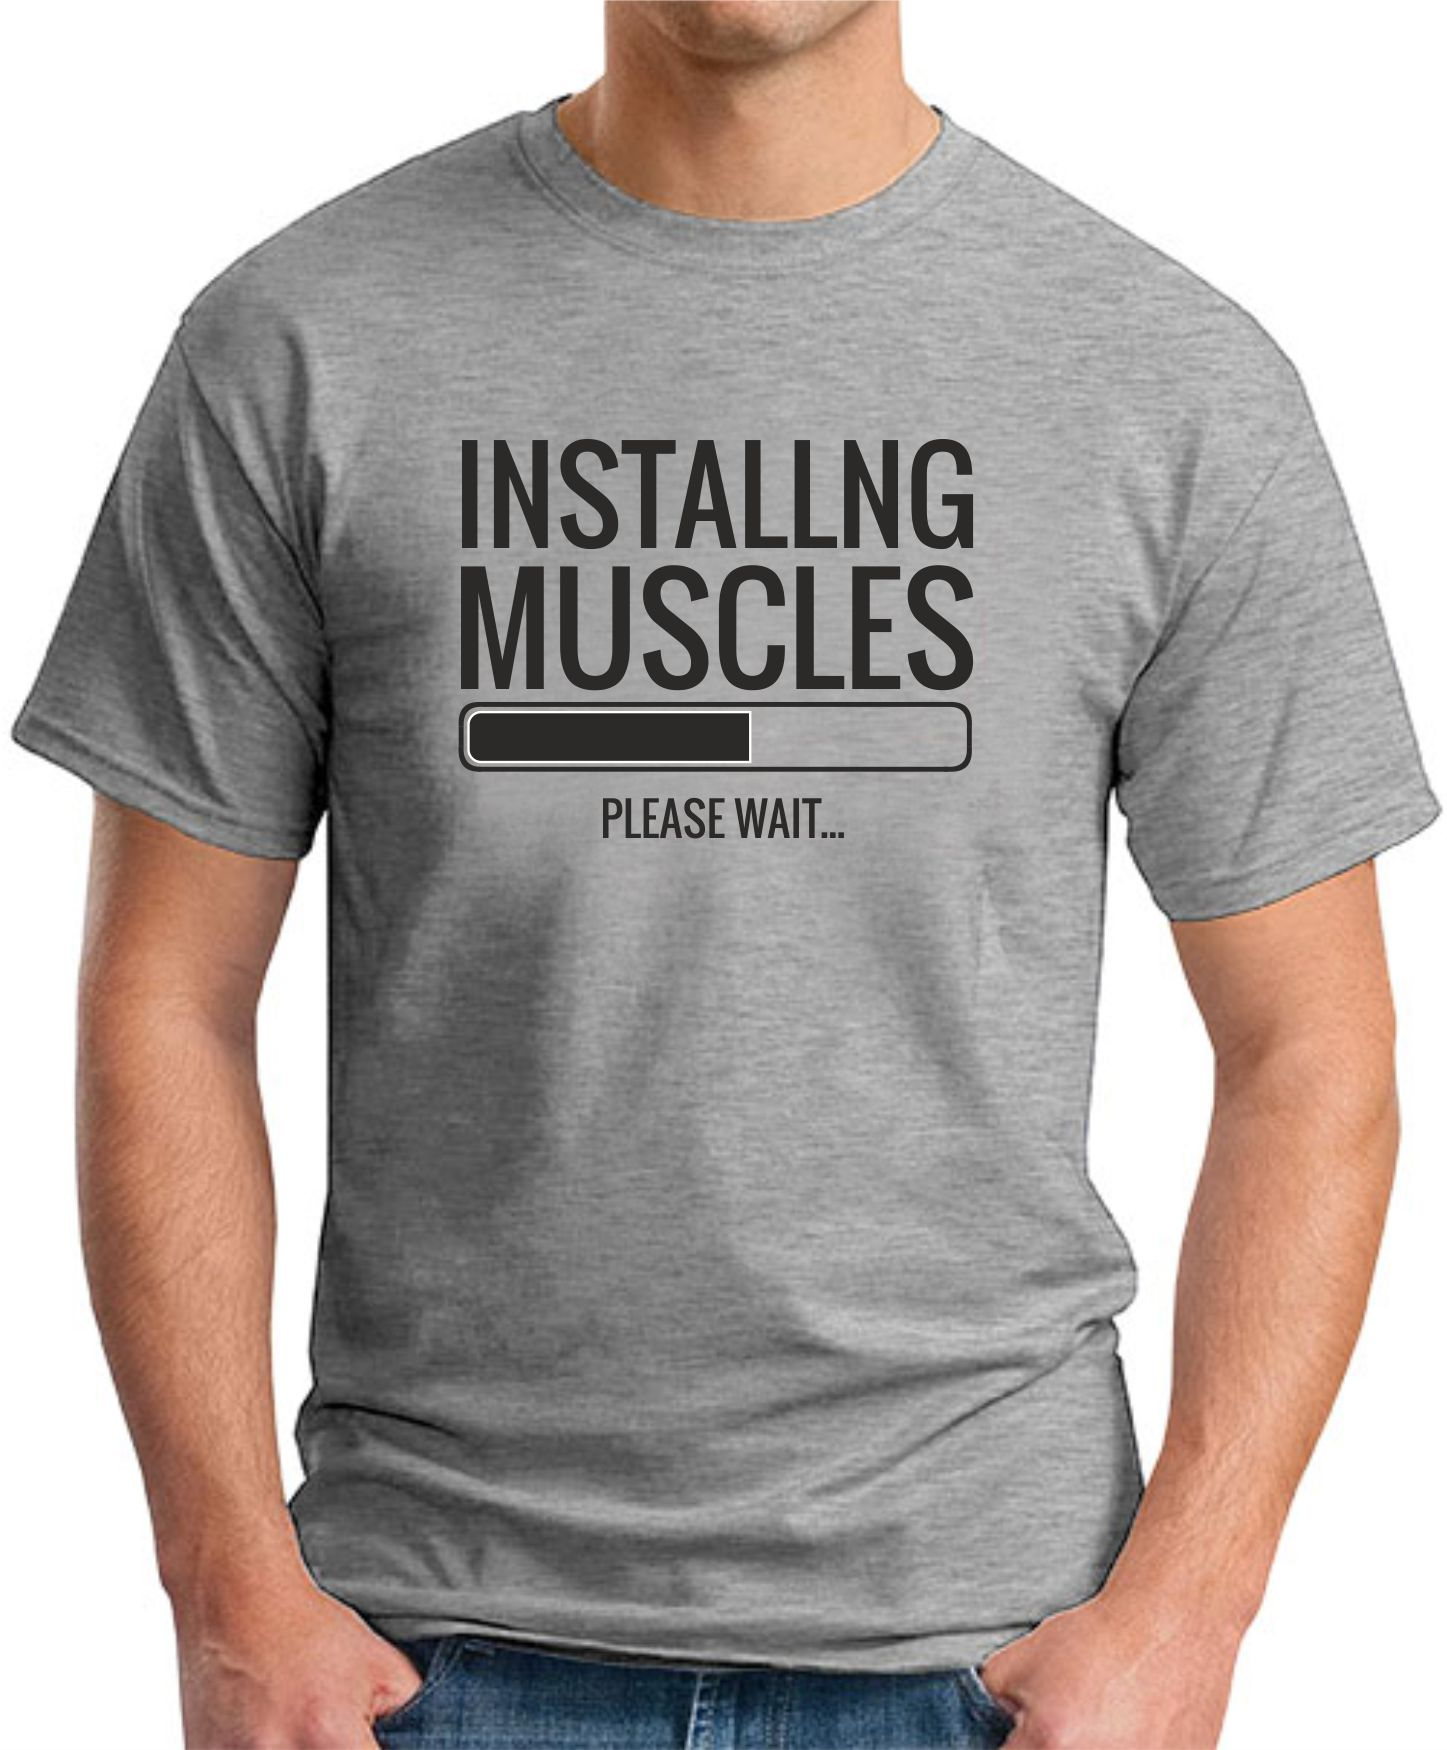 INSTALLING MUSCLES Grey